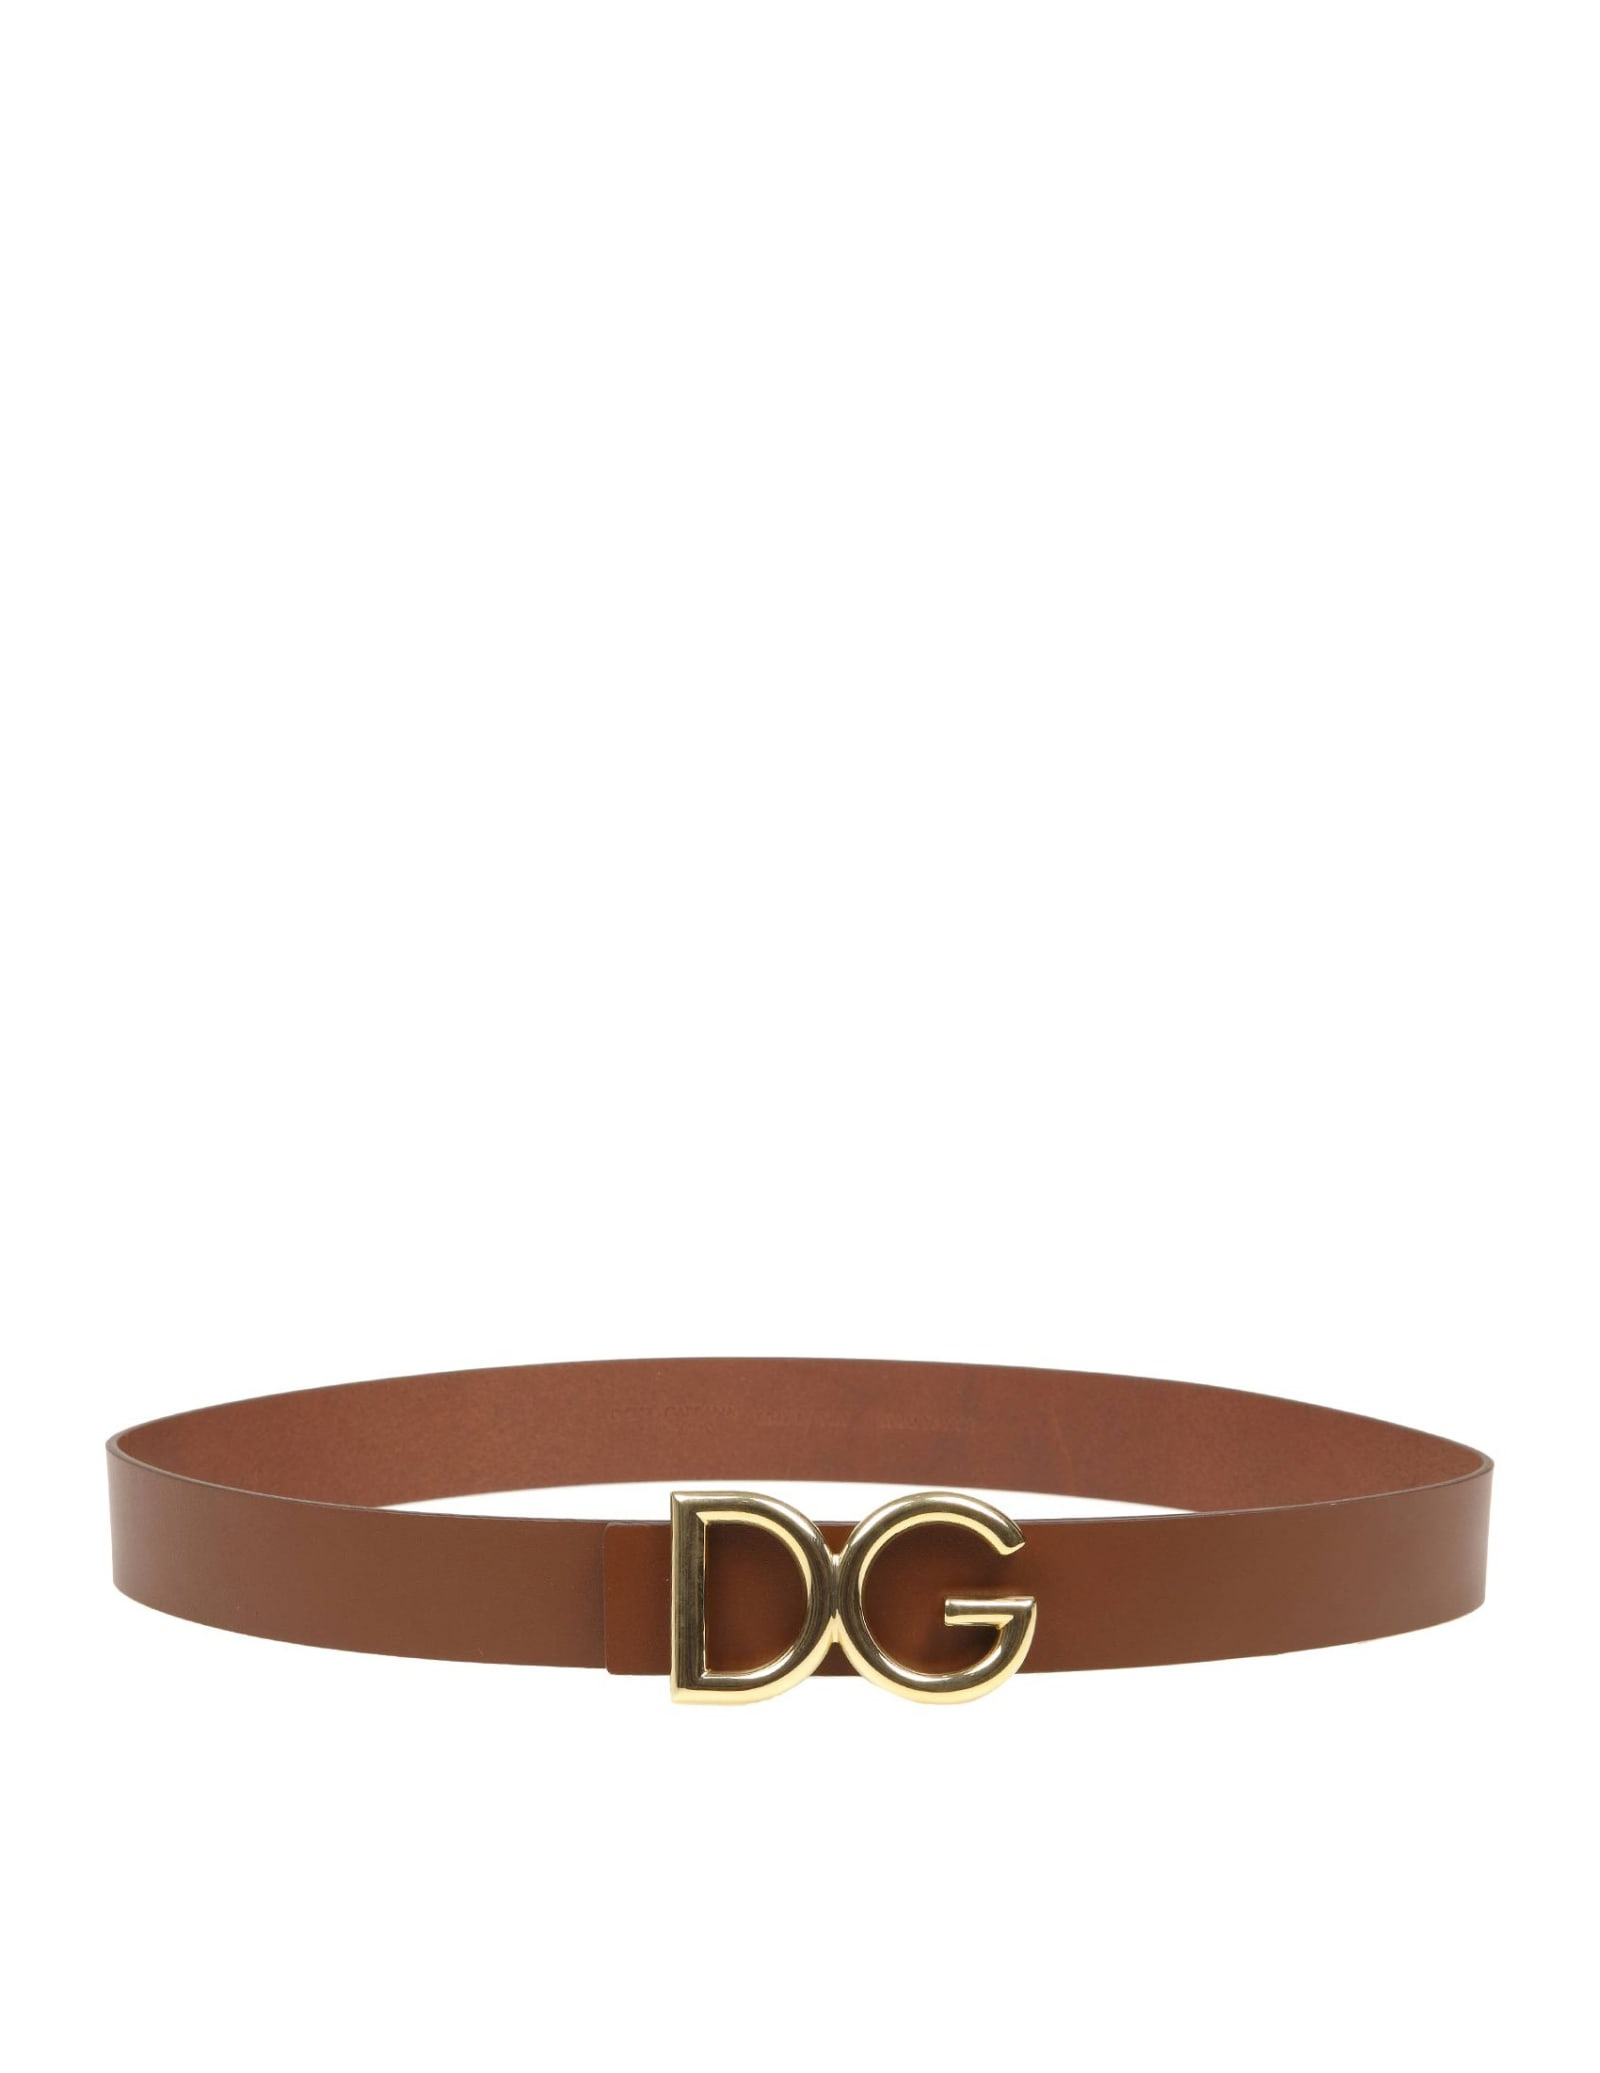 Dolce & Gabbana Calf Belt With Dg Metal Logo In Leather